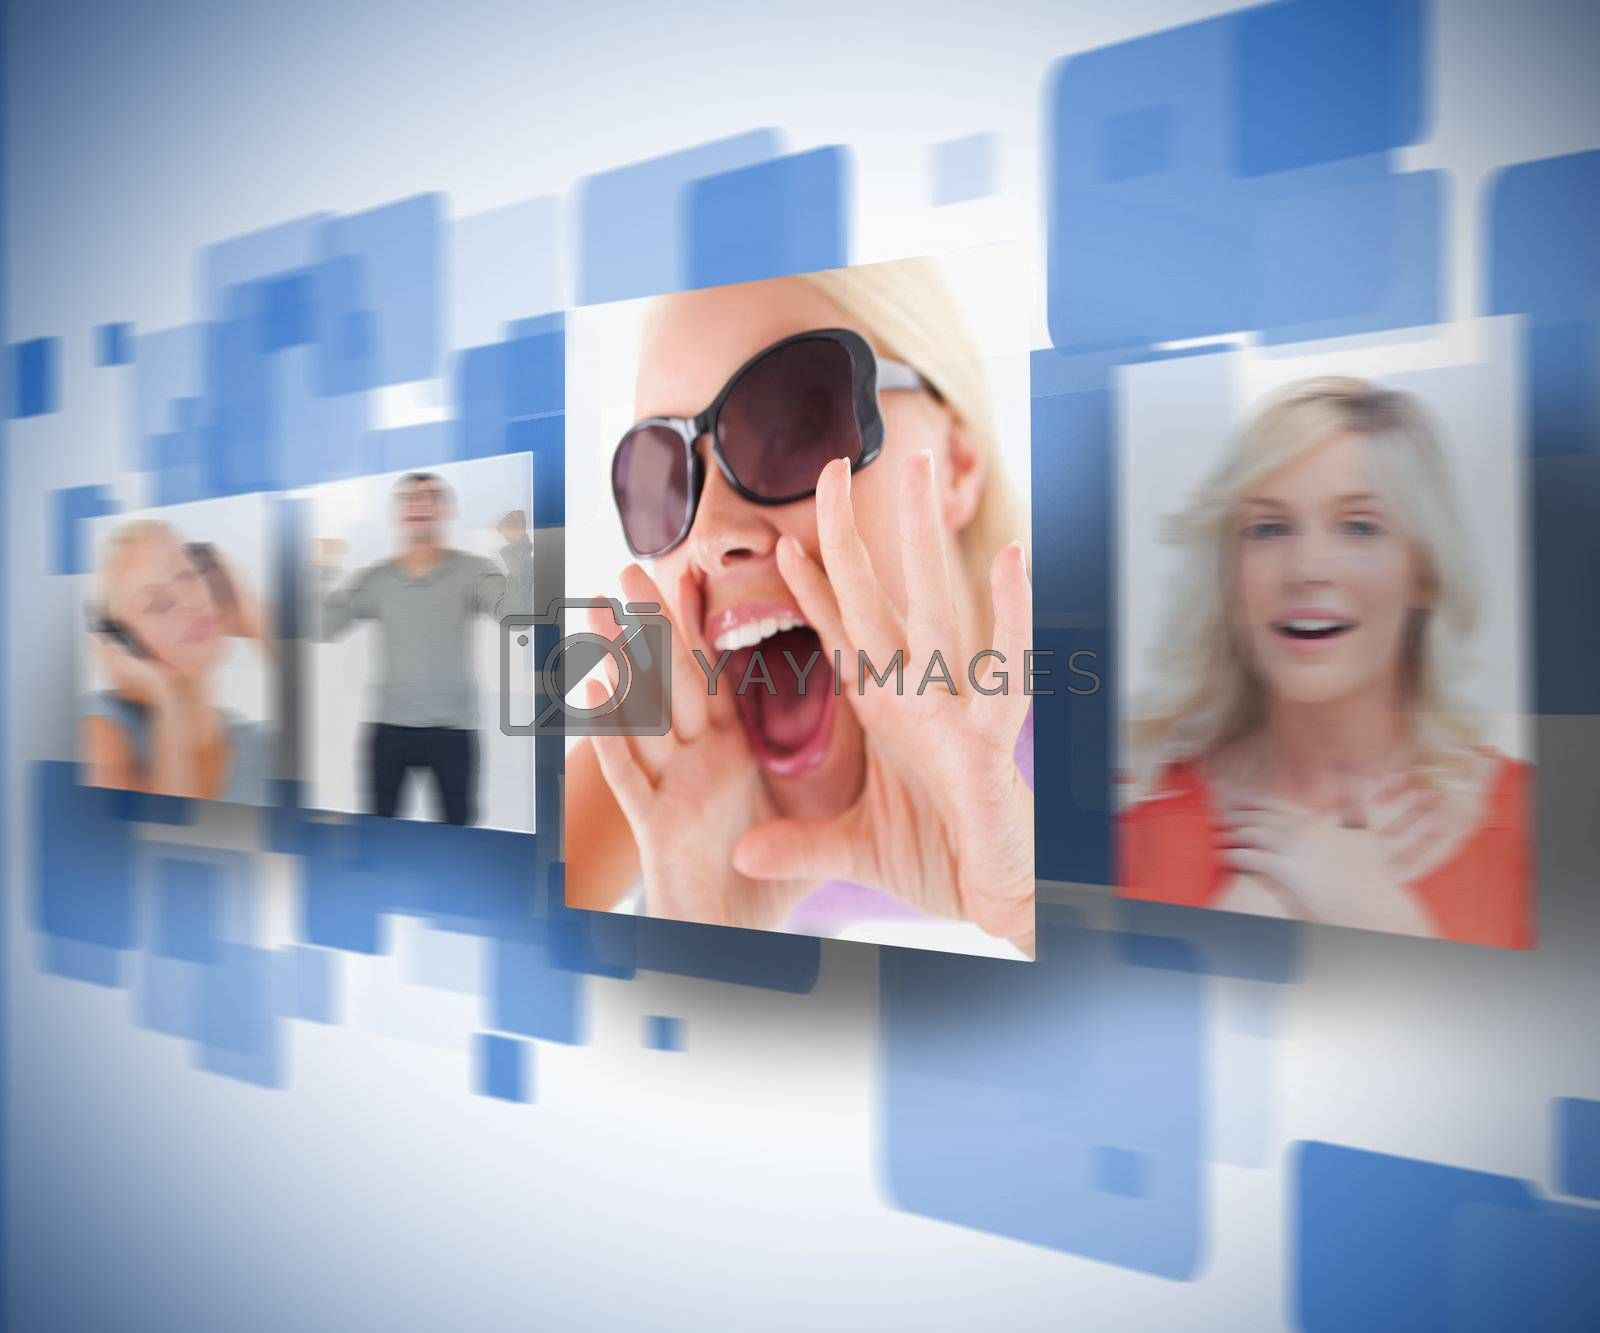 Four pictures on blue digital wall